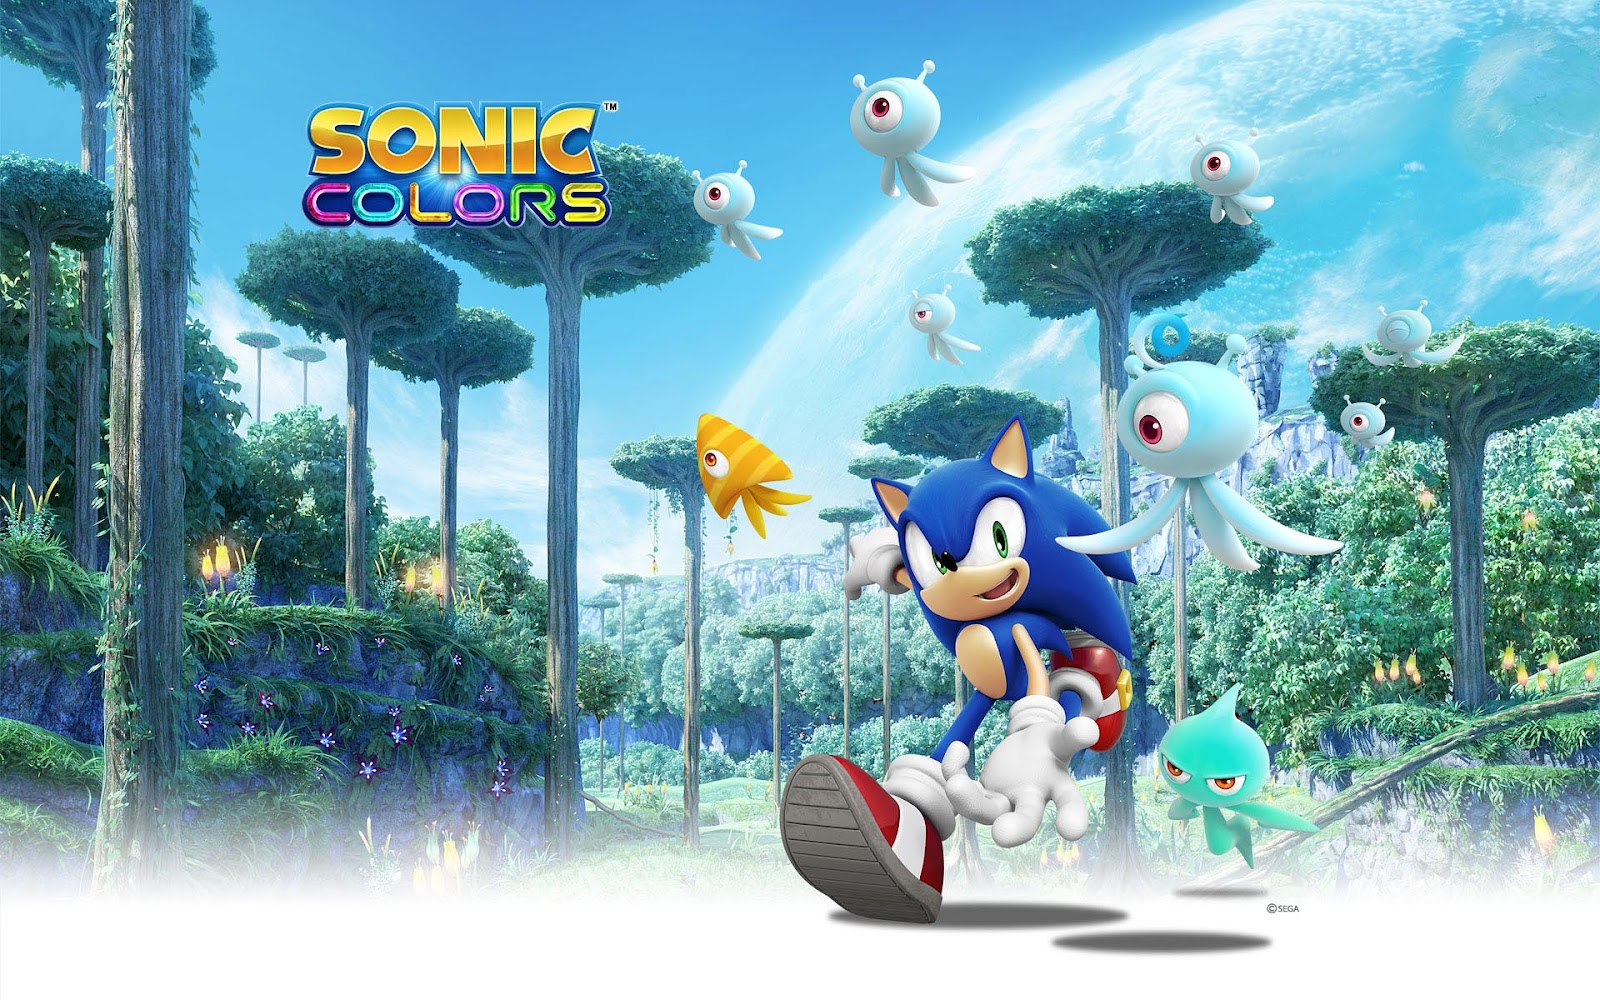 http://3.bp.blogspot.com/-CmMGbeZrEbU/UD55Pyqu0II/AAAAAAAABro/K8KiudEwymU/s1600/hd-game-sonic-the-hedgehog-wallpaper-hd-game-sonic-colors-achtergrond-game.jpg